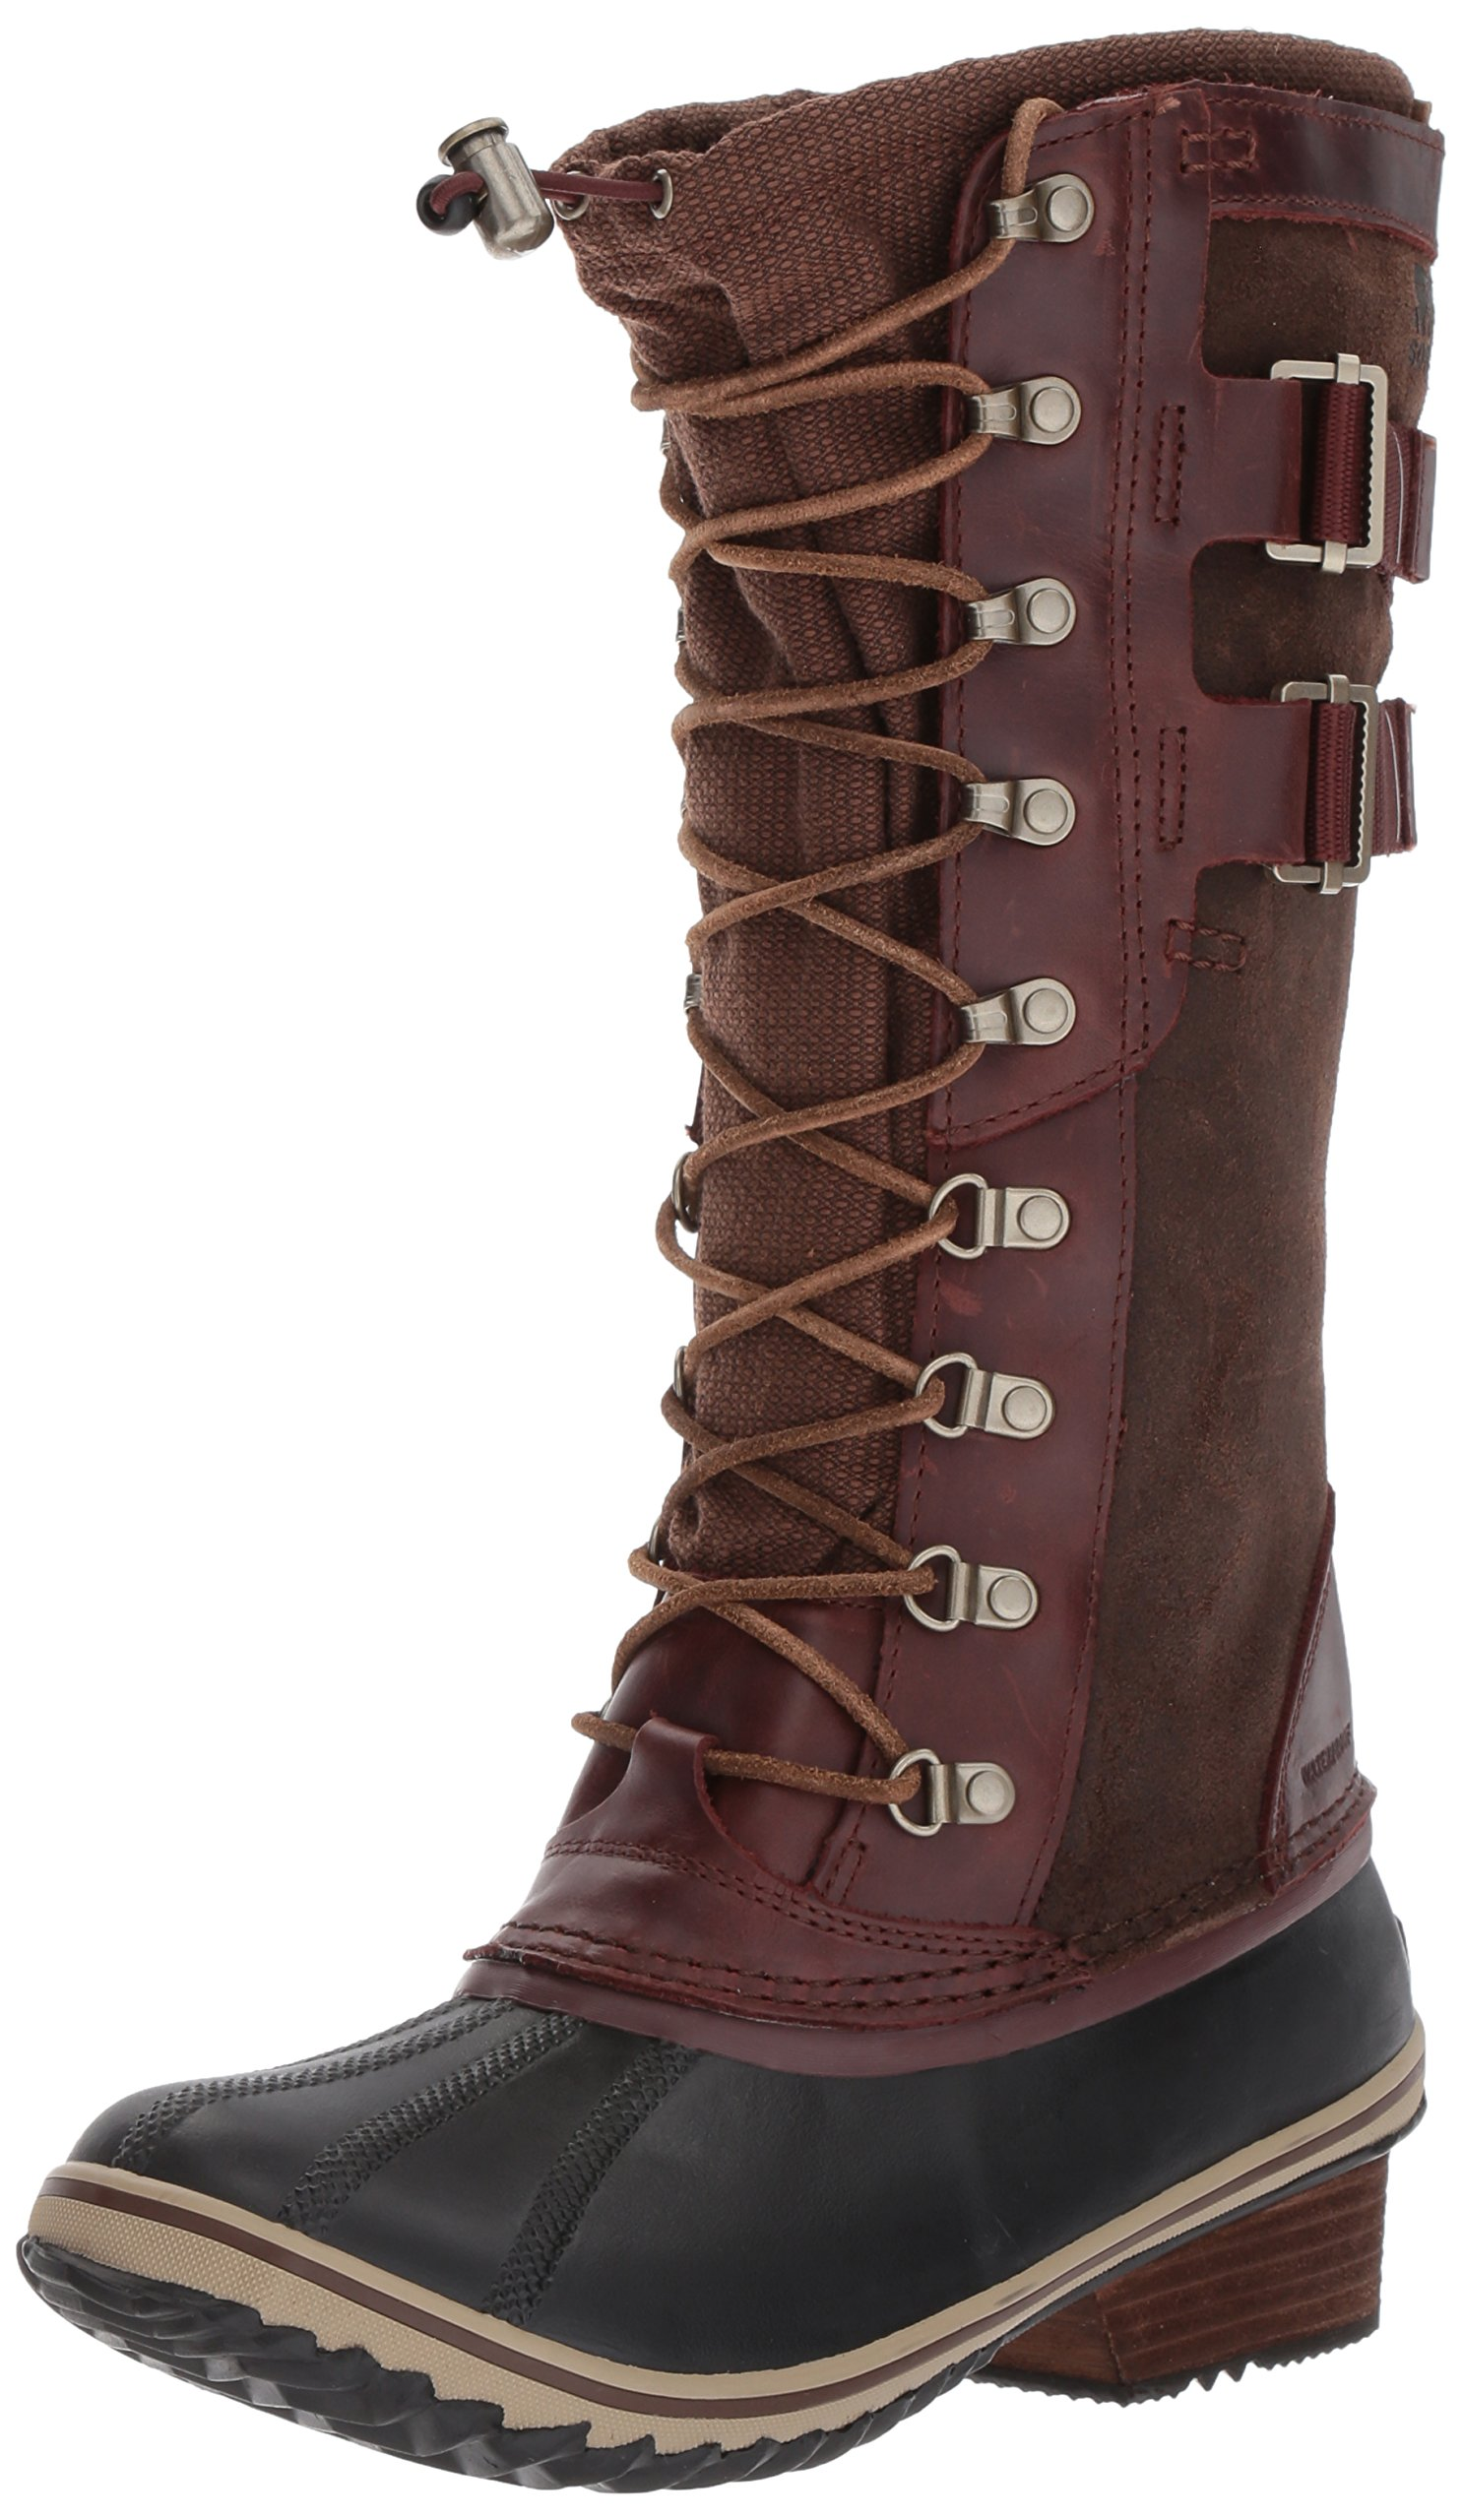 Sorel Women's Conquest Carly II Snow Boot, Redwood, Tobacco, 8.5 B US